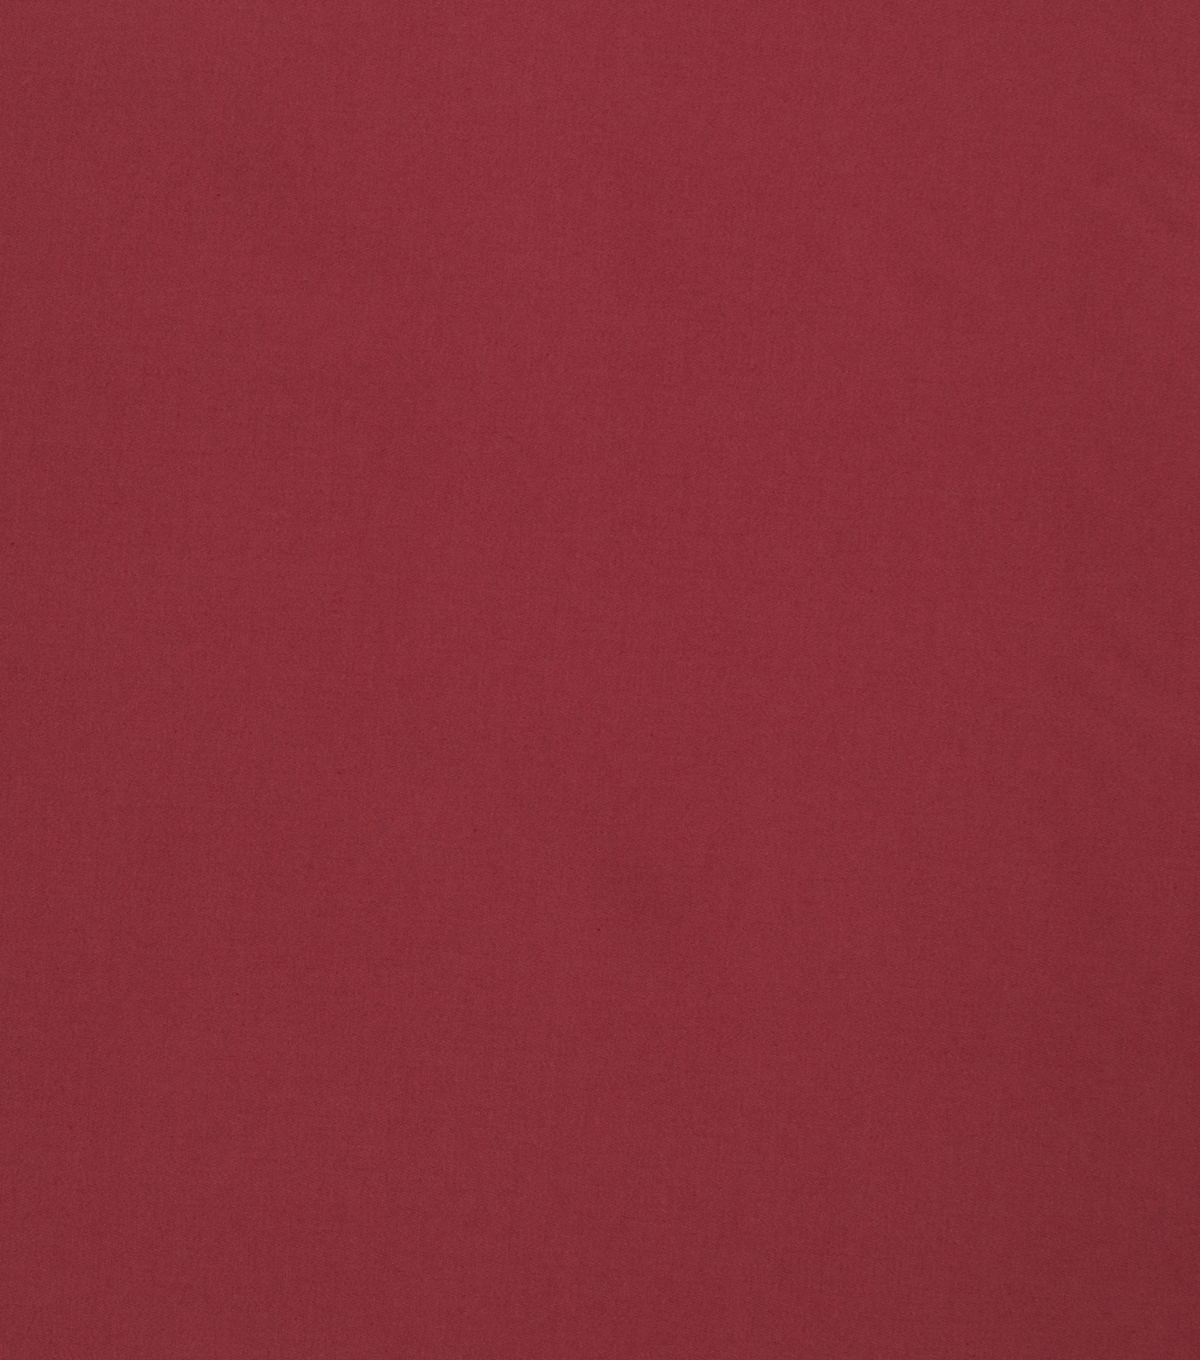 Home Decor 8x8 Fabric Swatch-Eaton Square Bandora Cherry